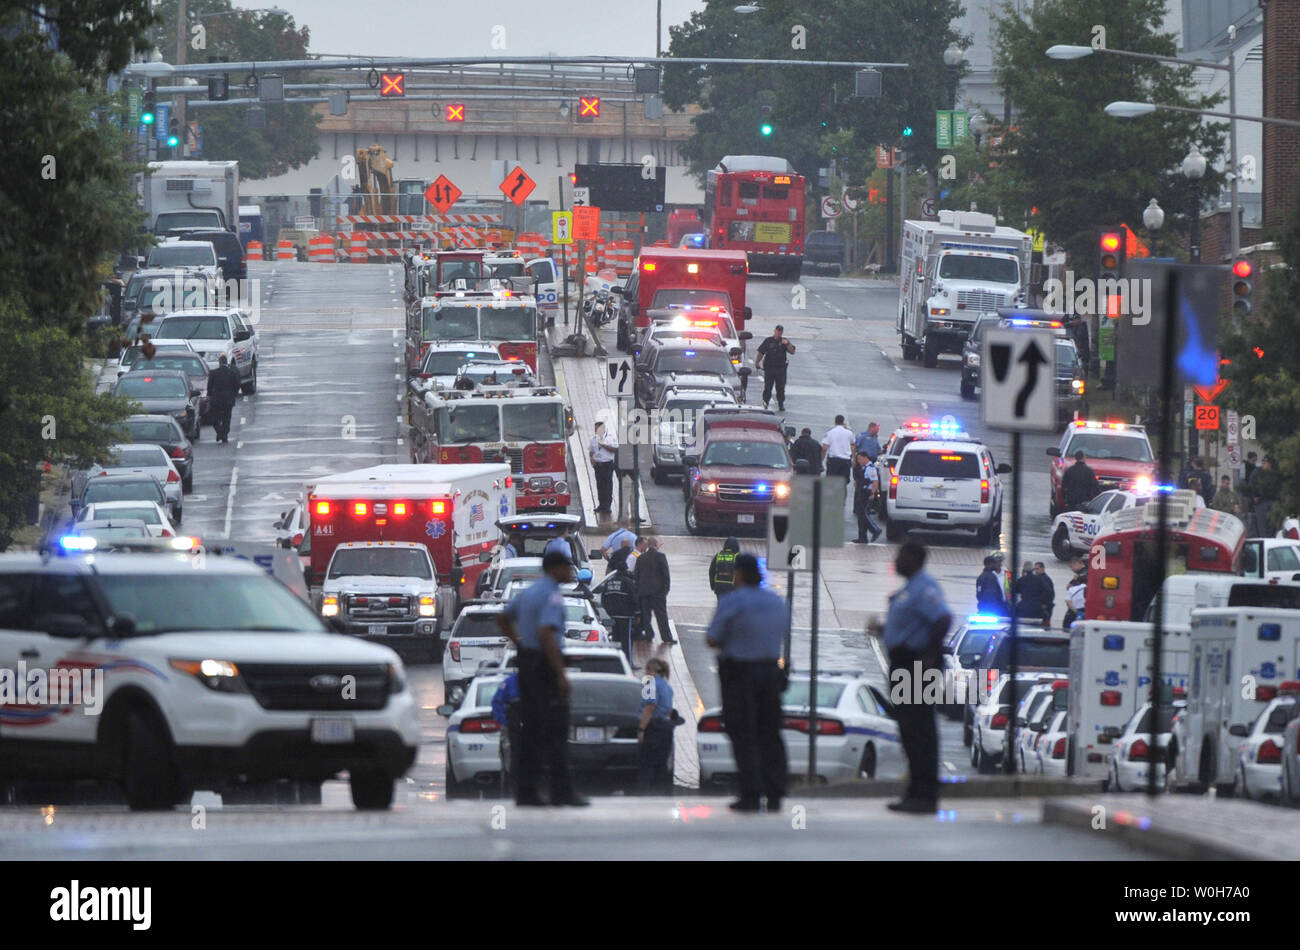 Emergency vehicles line the street near the Navy Yard, a huge complex of buildings located along the Anacostia River waterfront on September 16, 2013 in Washington, DC. A gunman killed at least four and wounded others before being killed by police in a running gun battle.     UPI/Kevin Dietsch Stock Photo